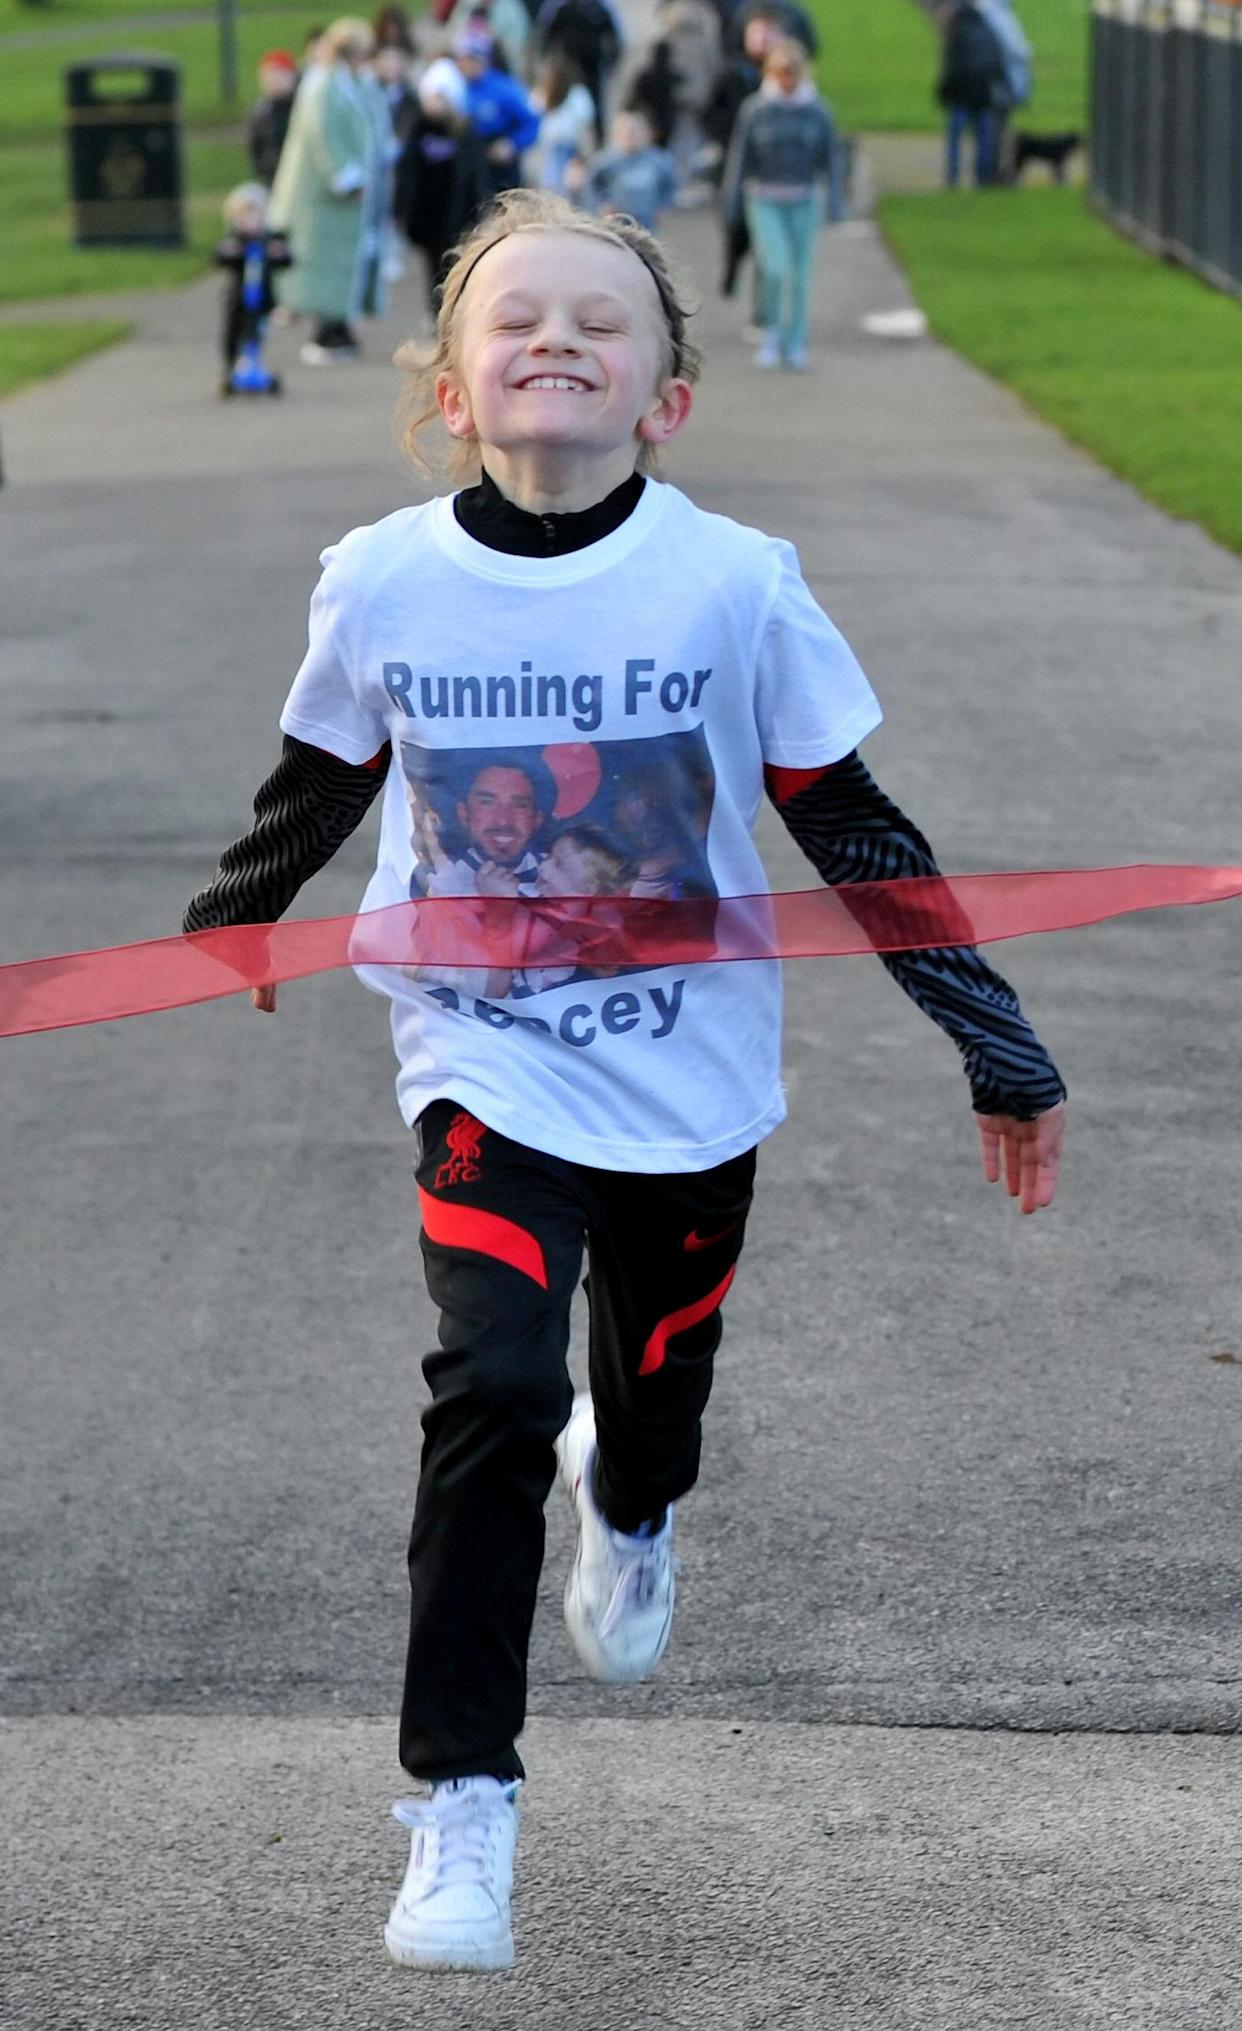 Jordan Banks raised money for charity in January by running over 30 miles in 10 days to celebrate what would have been the 30th birthday of his uncle Reece Begg, who killed himself two years ago. (SWNS)